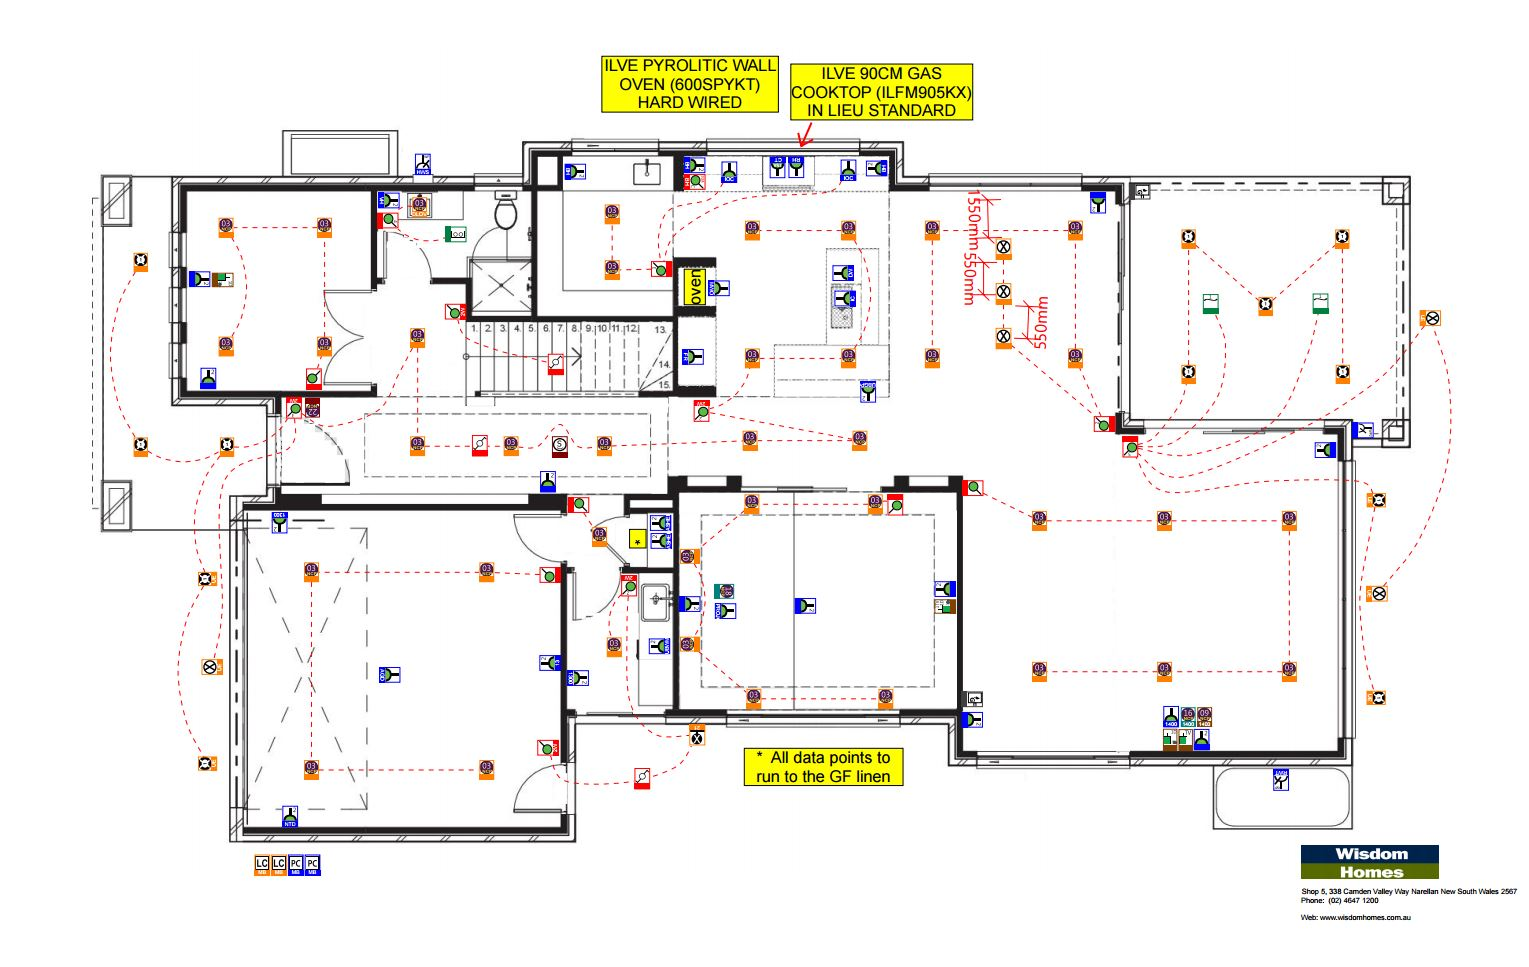 Electrical Plan Homeone Manual Guide Wiring Diagram Building Electric Auto Rh Mastdn Me Forum A House